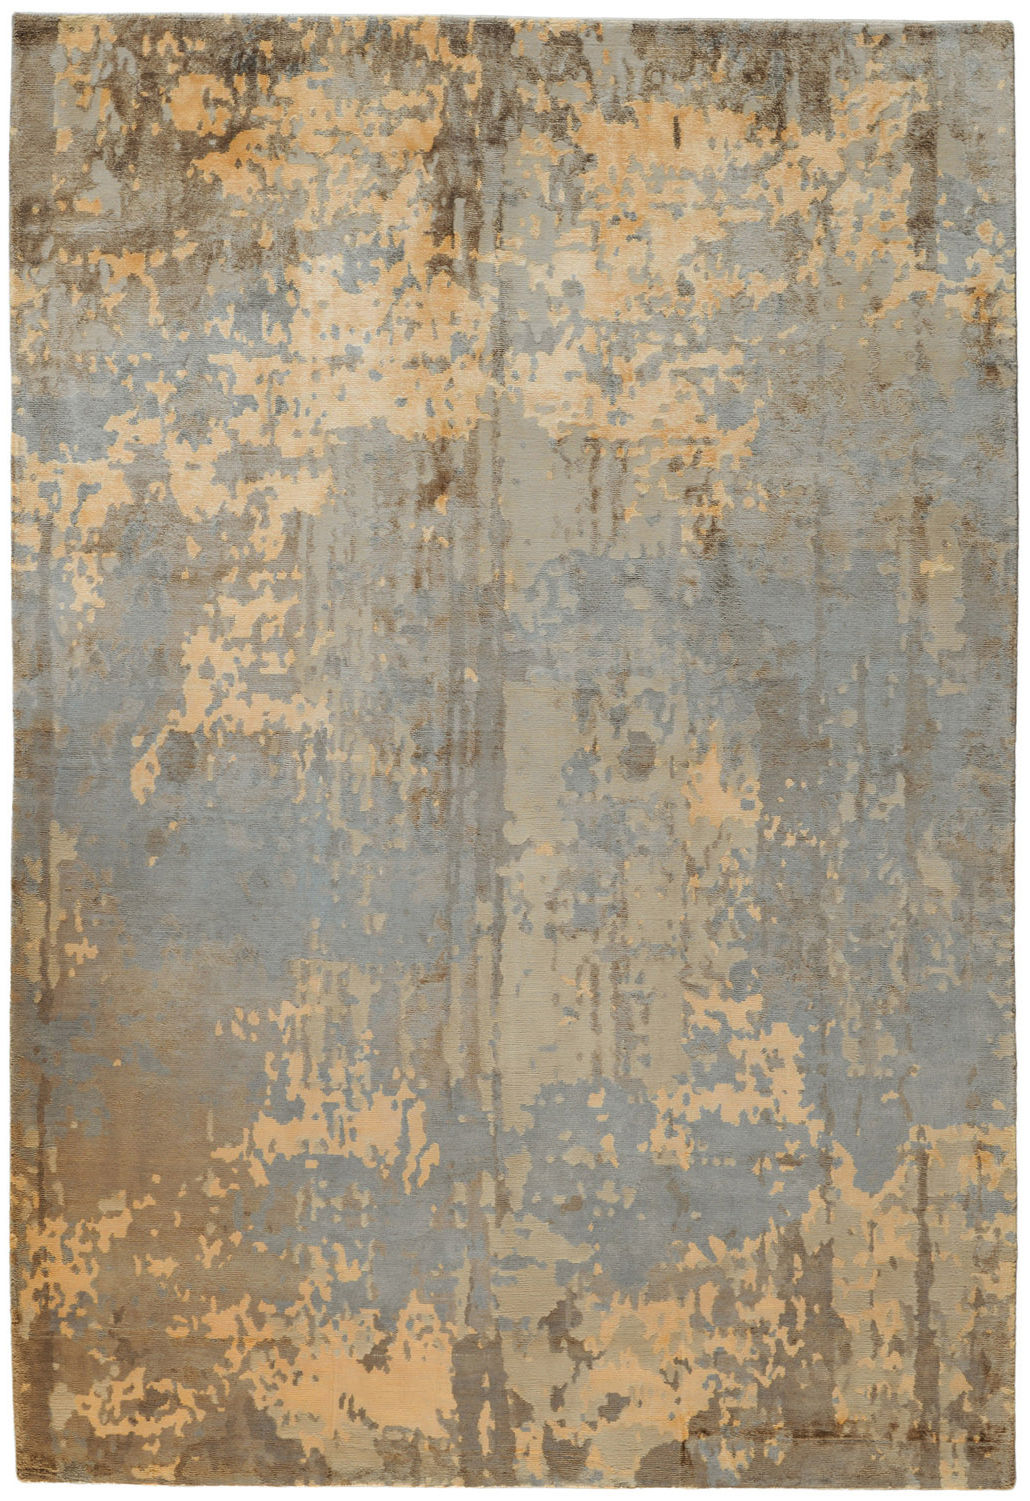 tapis mmoire toulemonde bochart sable jaune 270 cm x 180 cm made in design - Tapis Toulemonde Bochart